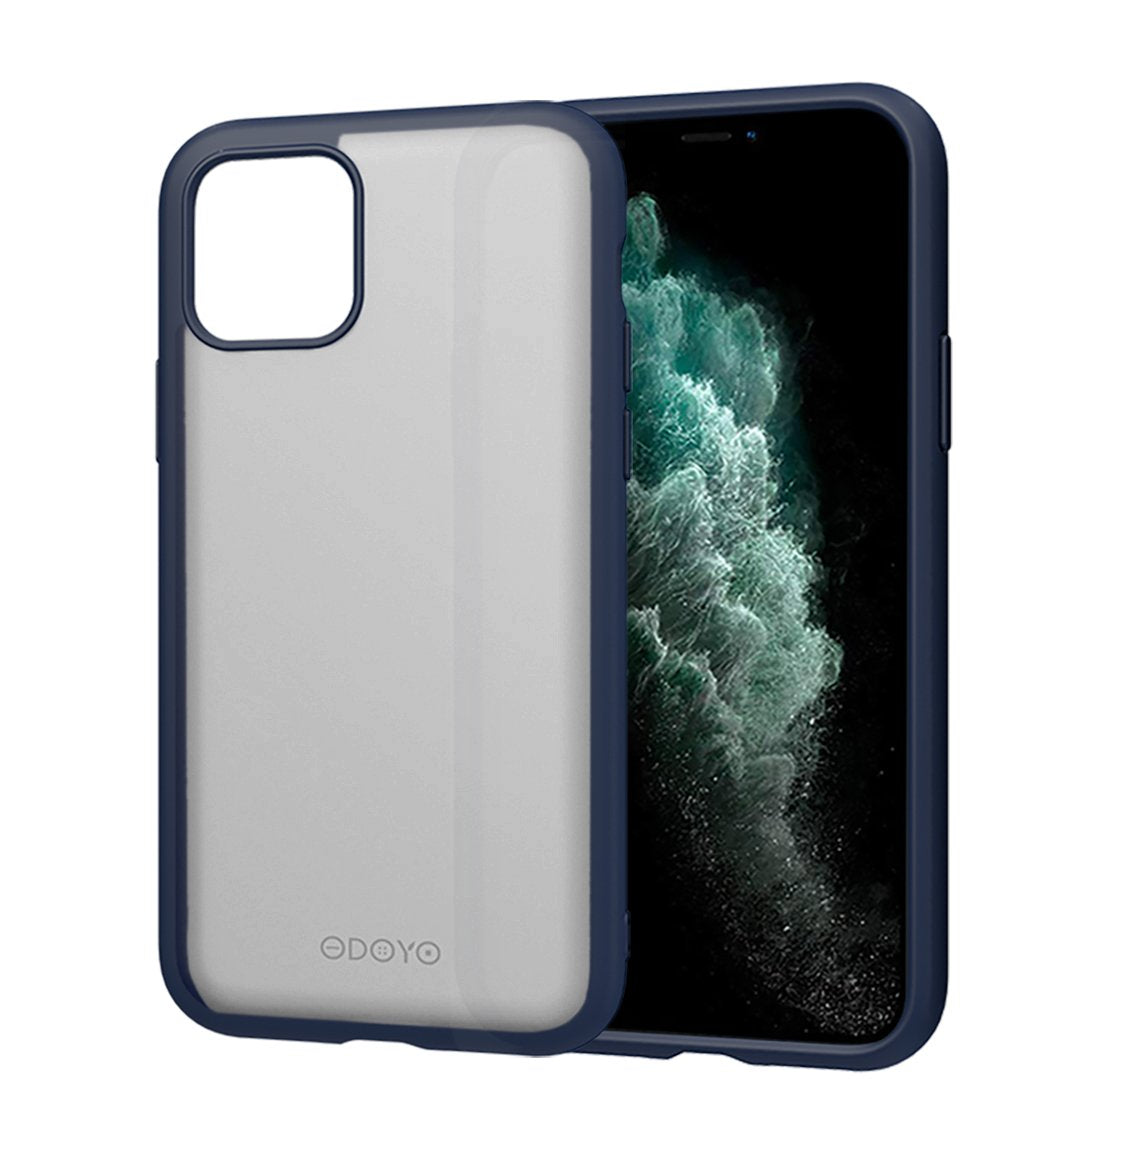 ODOYO iPhone 11 Pro Translucent Matte Case with Soft Edges - Shockproof, Slim Fit, Lightweight with Soft Silicone Bumper and Anti-Scratch Hard Protective Back for iPhone 11 Pro (2019) 5.8 Inch (Blue)